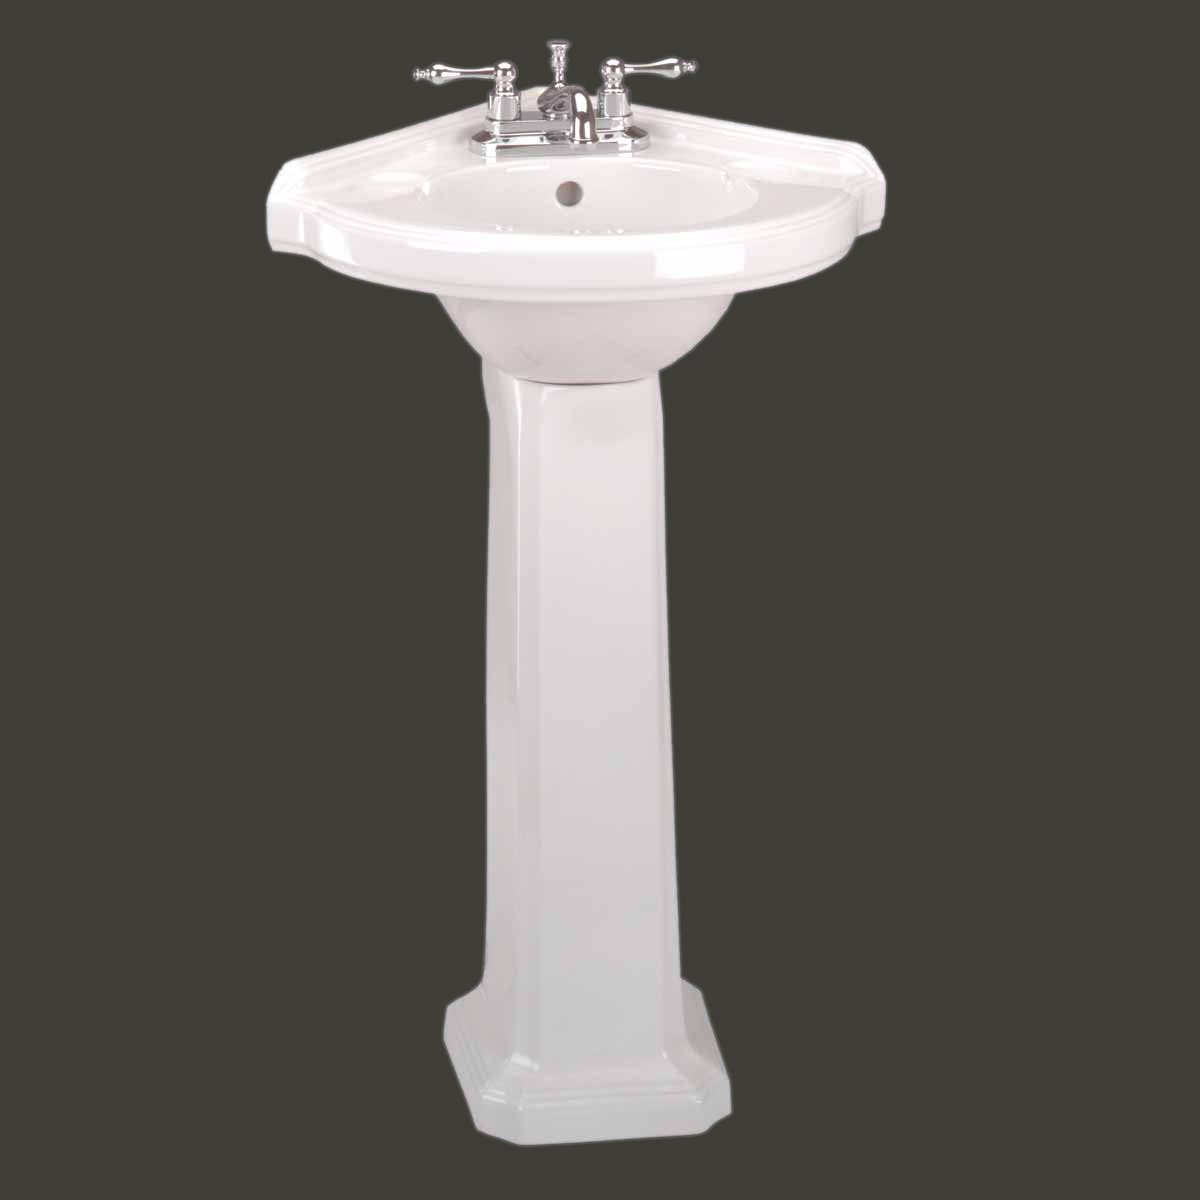 Corner Pedestal Sink White Vitreous China 32 3 4 In H Manufacturer S 1 Year Guarantee You Will Love This Sink Or Your Money Back Any Time Within 1 Year